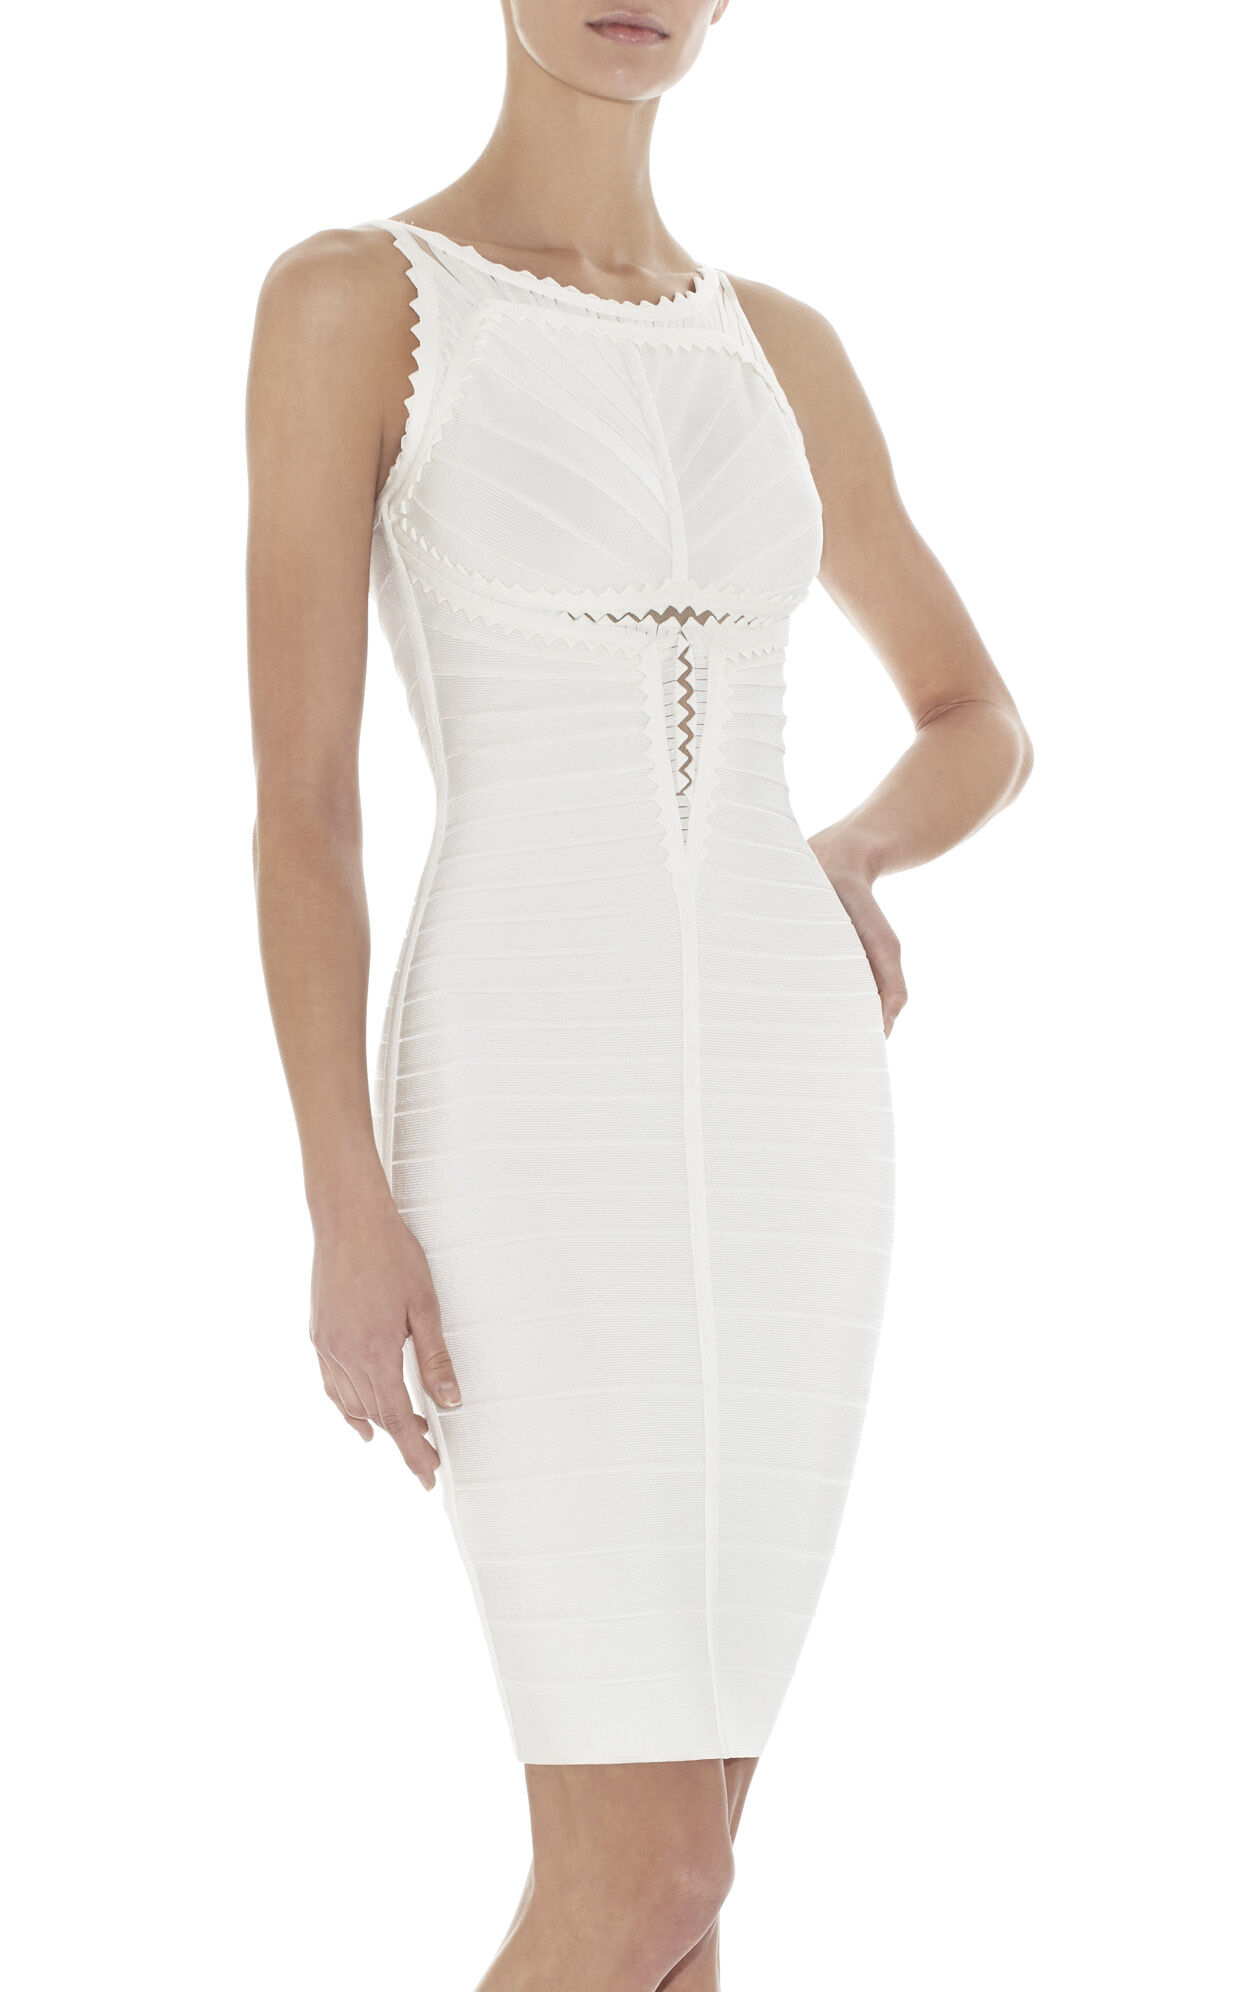 Brookelle Embellished Hand-Crafted Dress